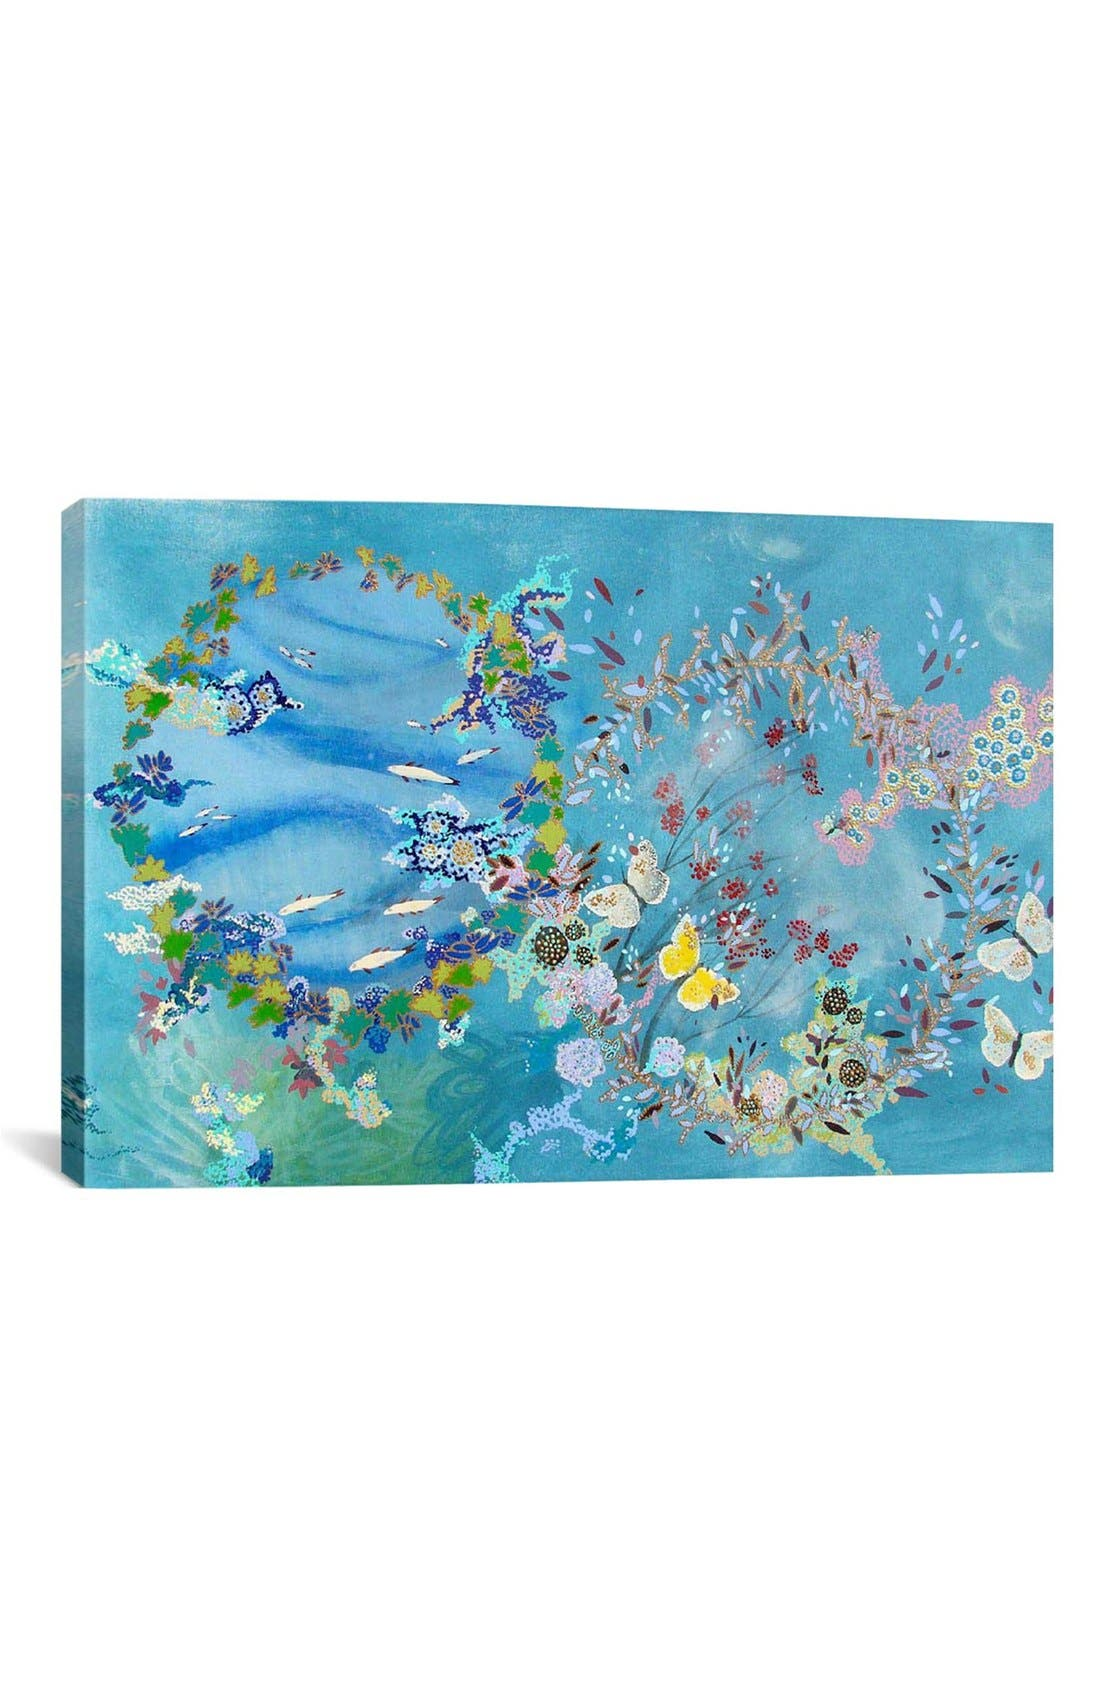 'Agua Y Aire - Lia Porto' Giclée Print Canvas Art,                             Main thumbnail 1, color,                             Blue/ Multi